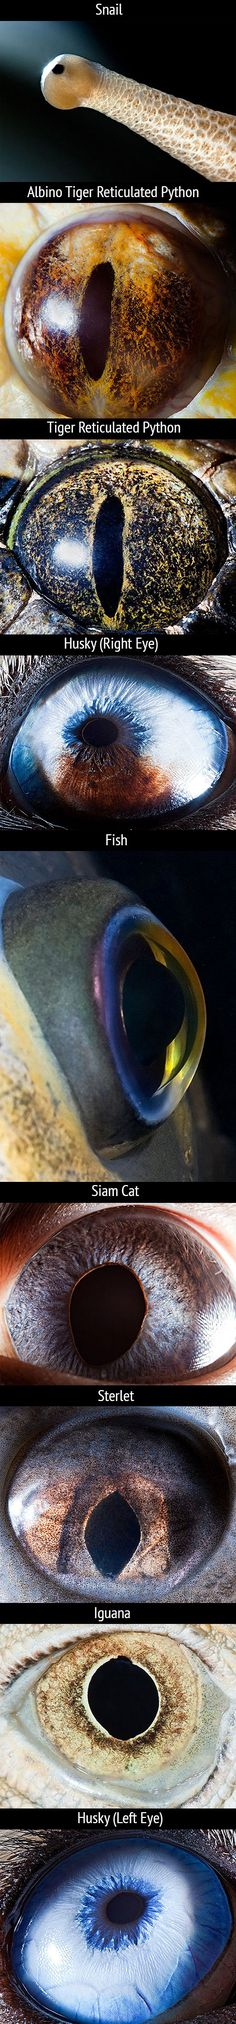 Here's another batch of mind-blowing macro photographs of animal eyes by Suren Manvelyan.